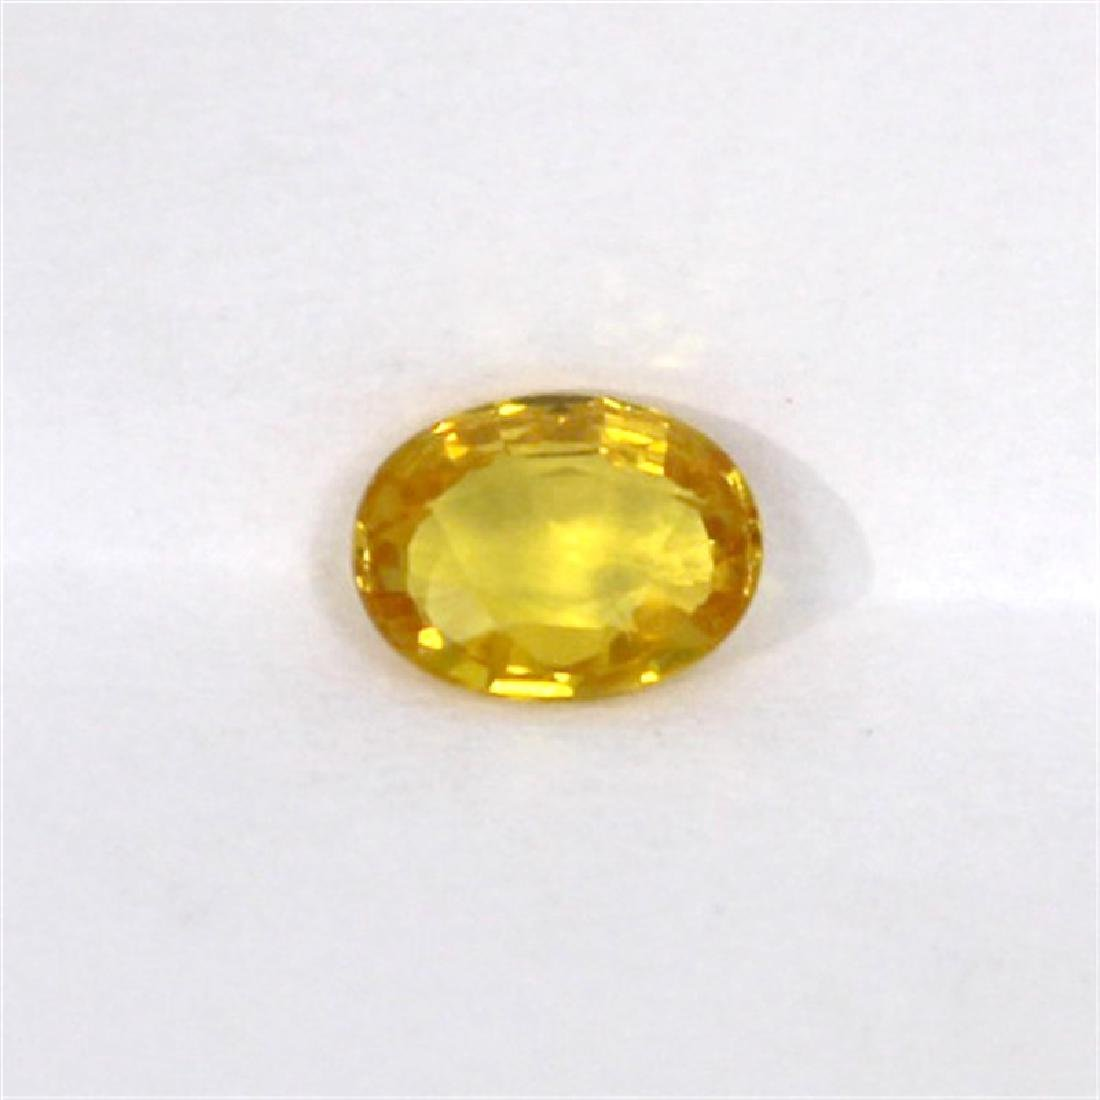 1.54ct Natural yellow Sapphire oval cut